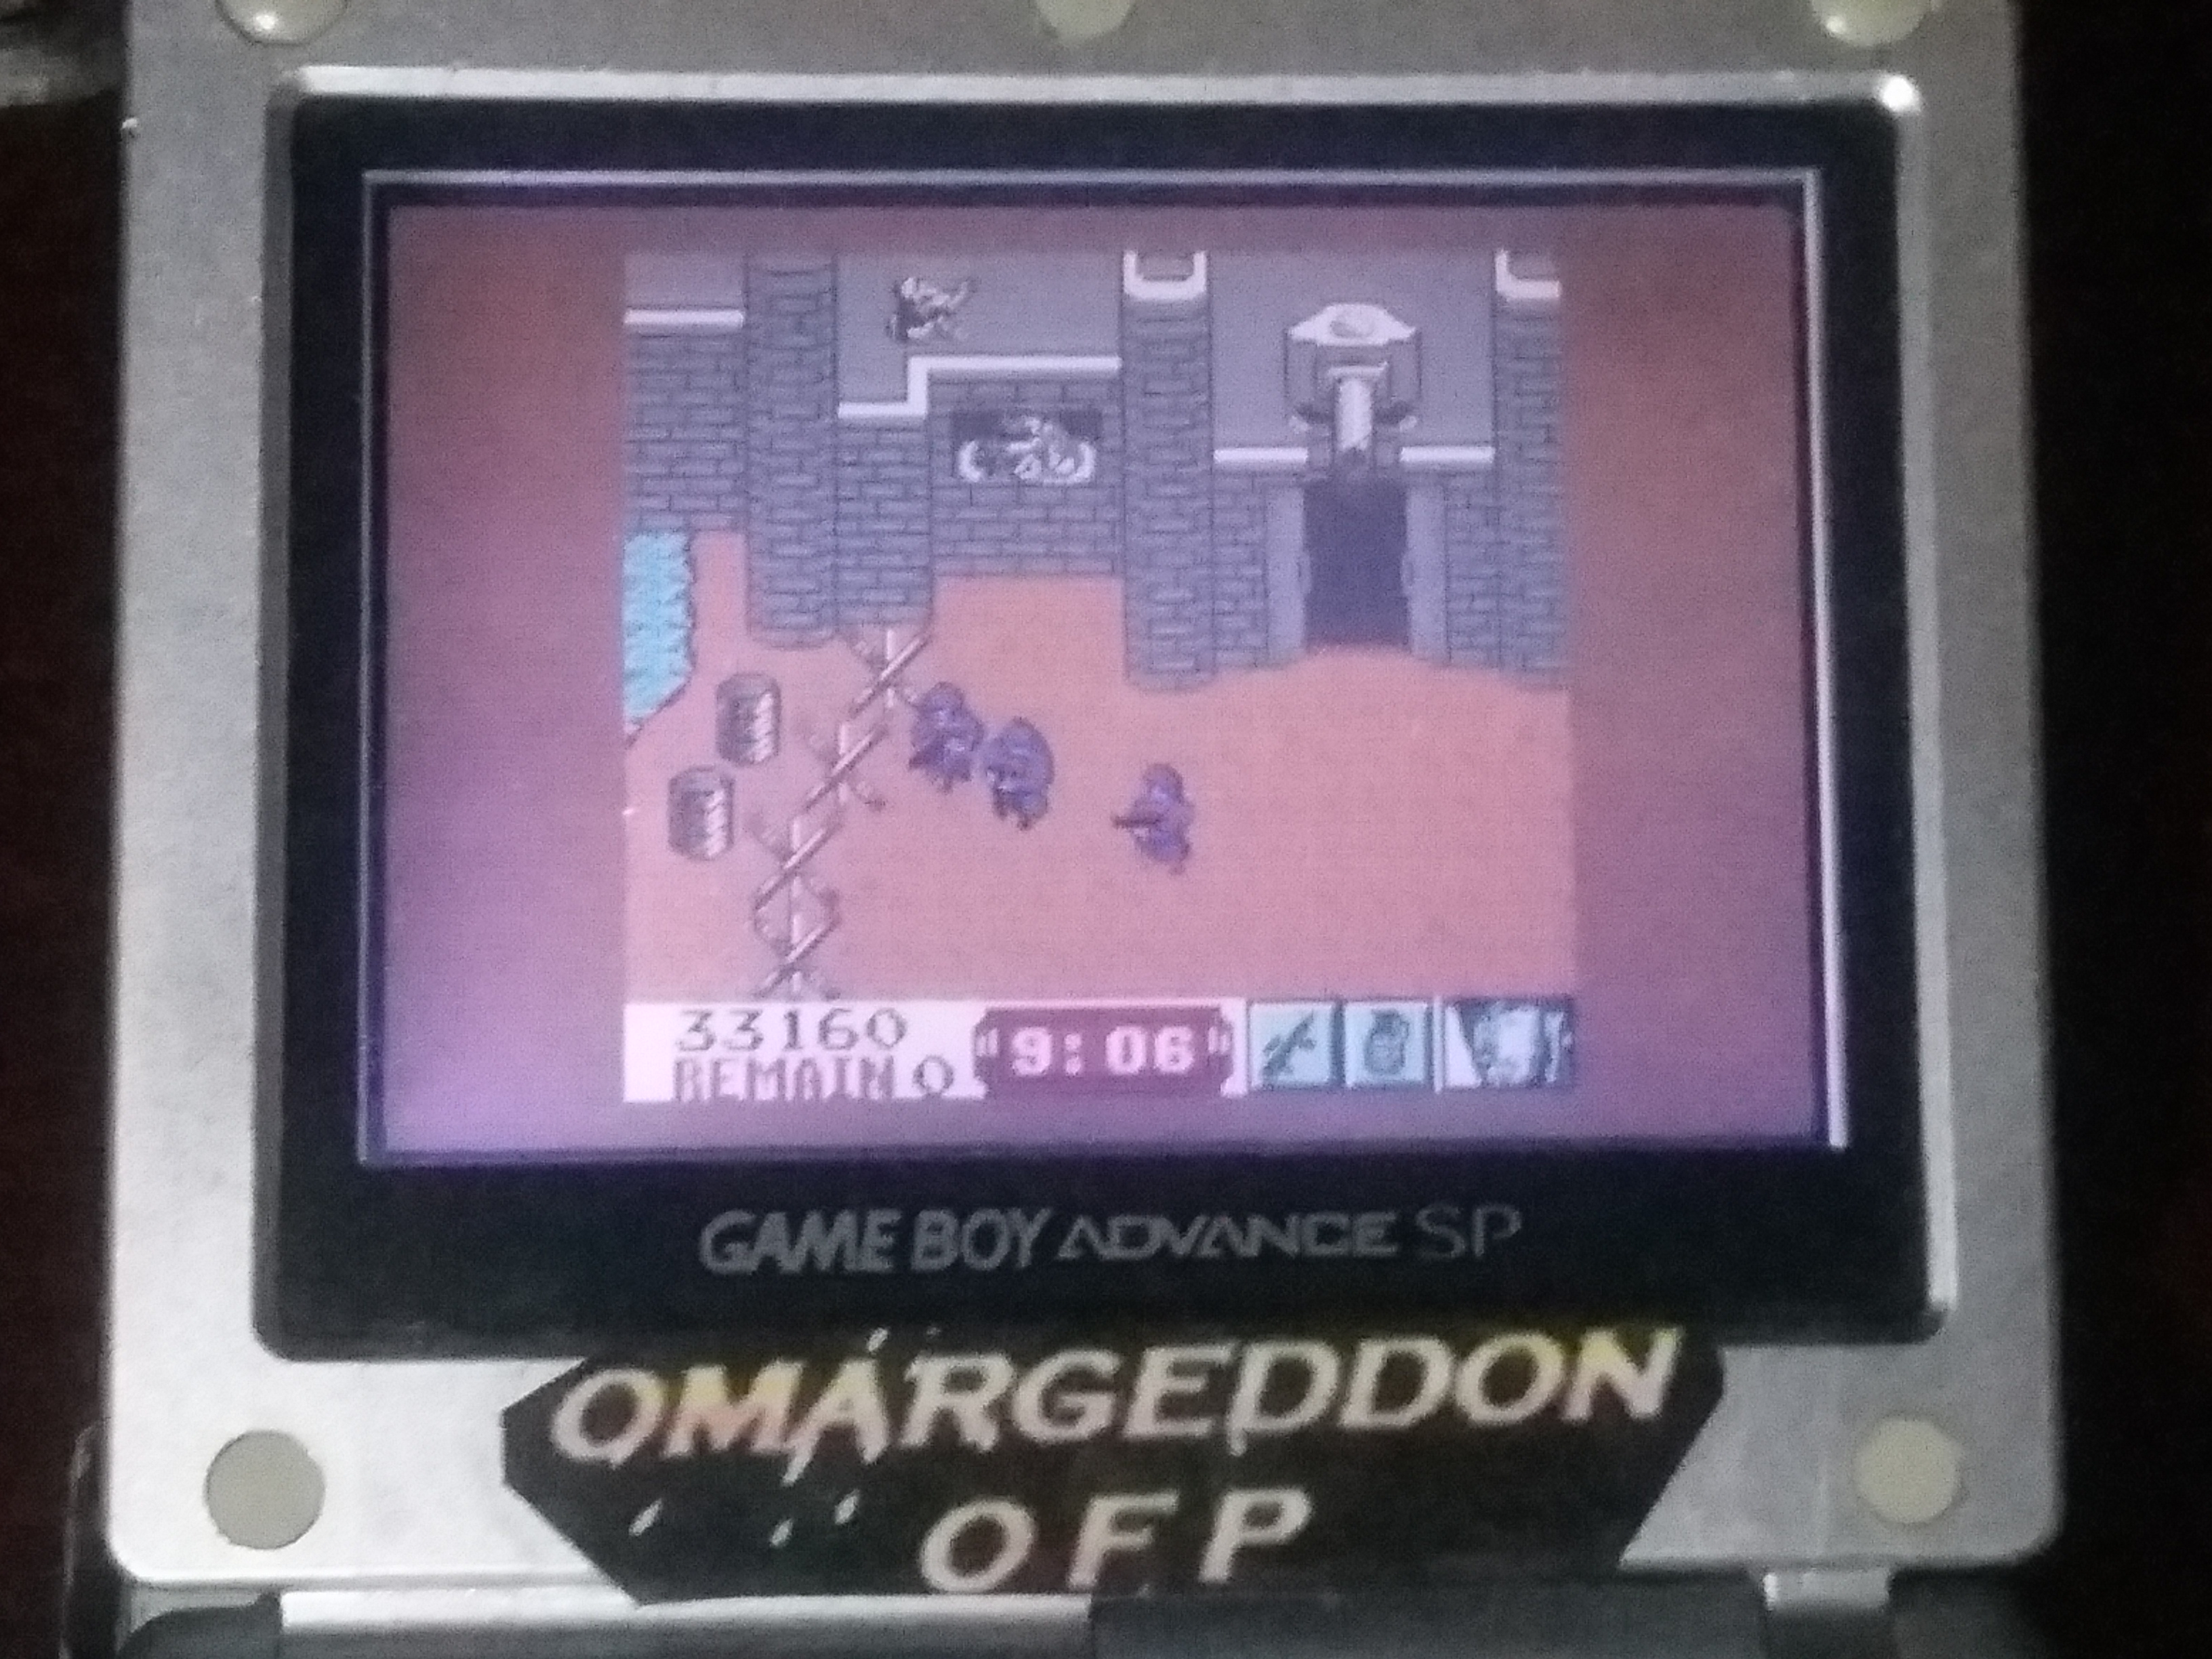 omargeddon: Front Line: The Next Mission (Game Boy Color) 33,160 points on 2018-01-19 20:51:02